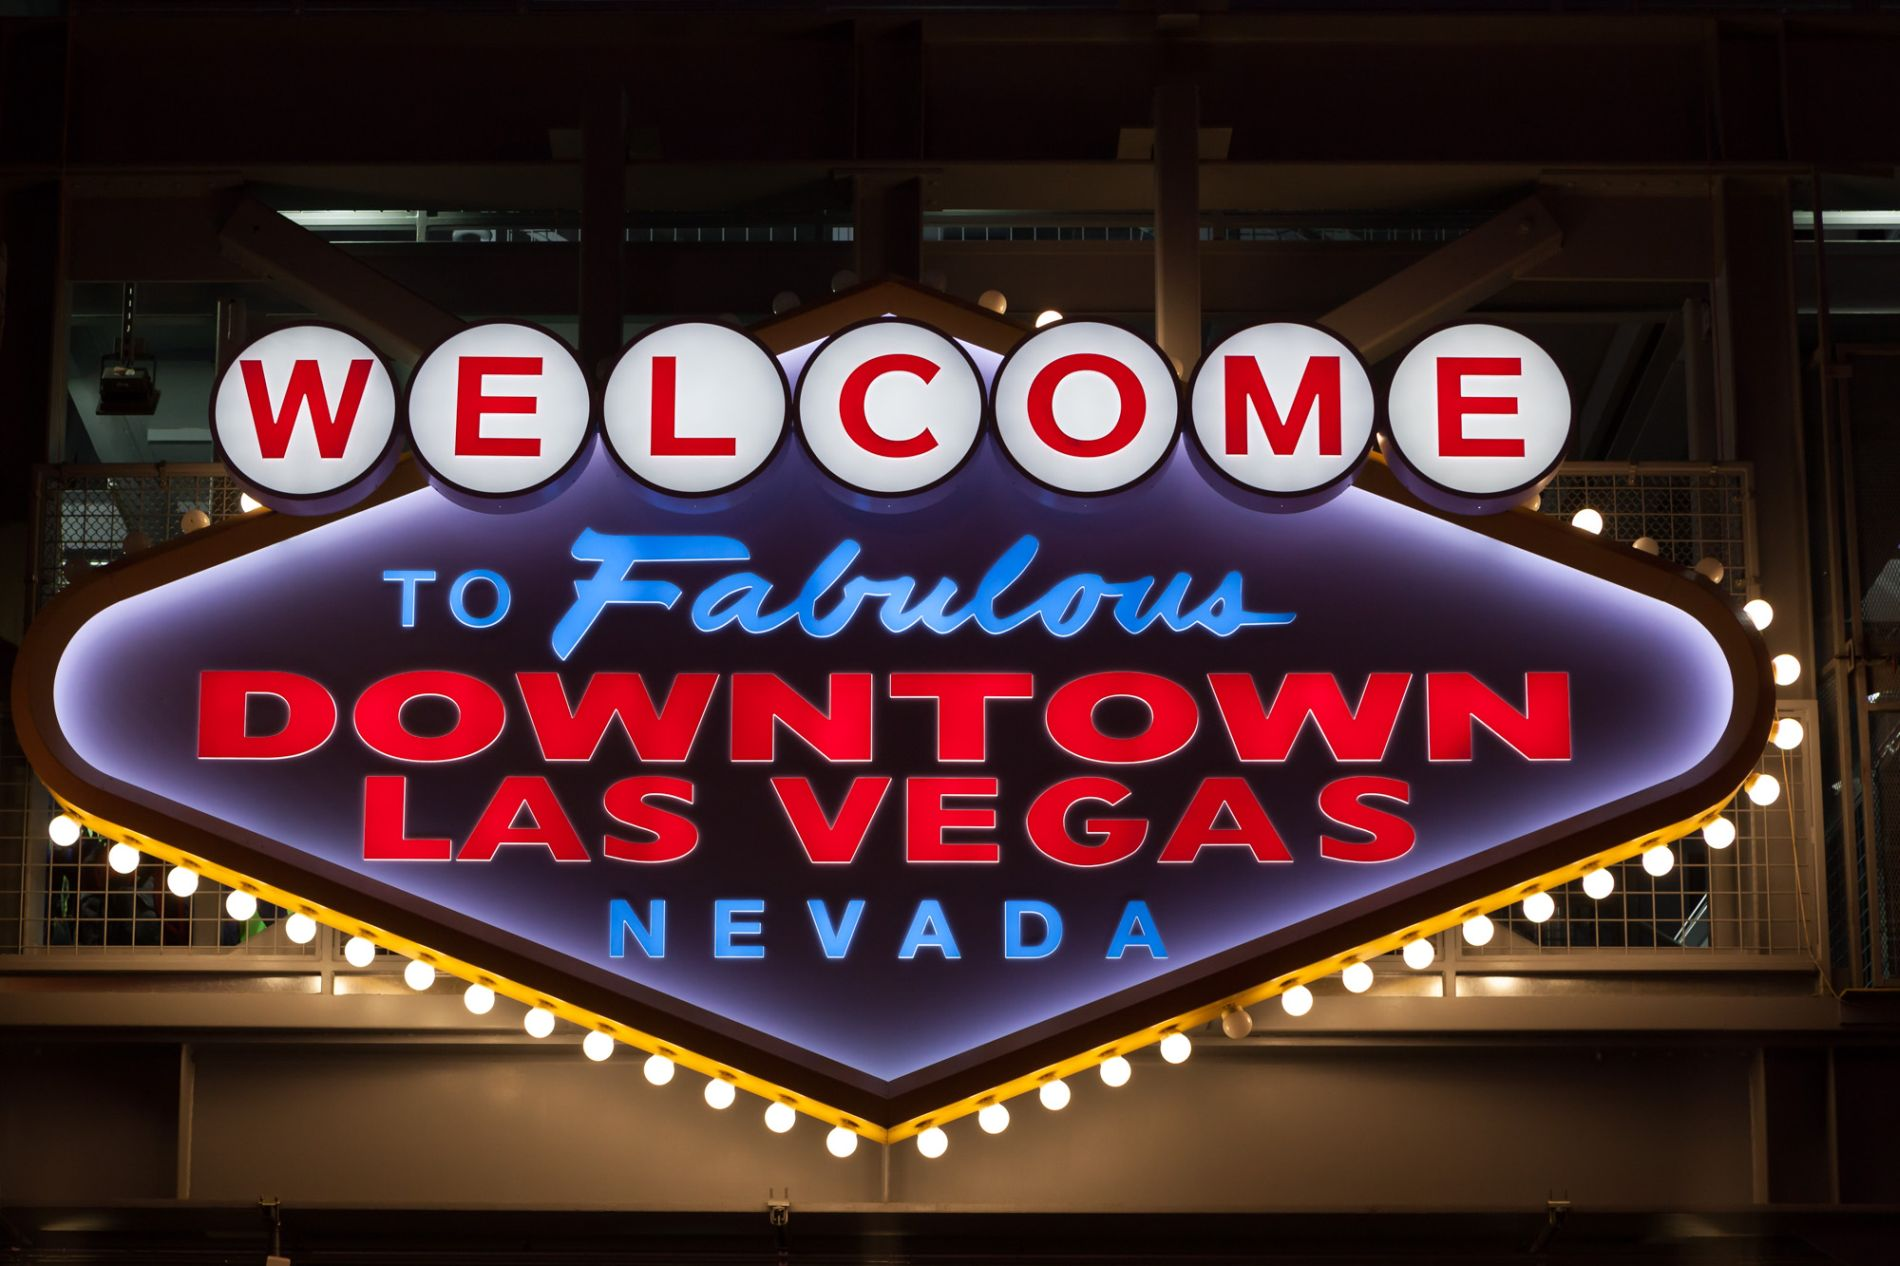 Things to do in Las Vegas (not on the Strip)